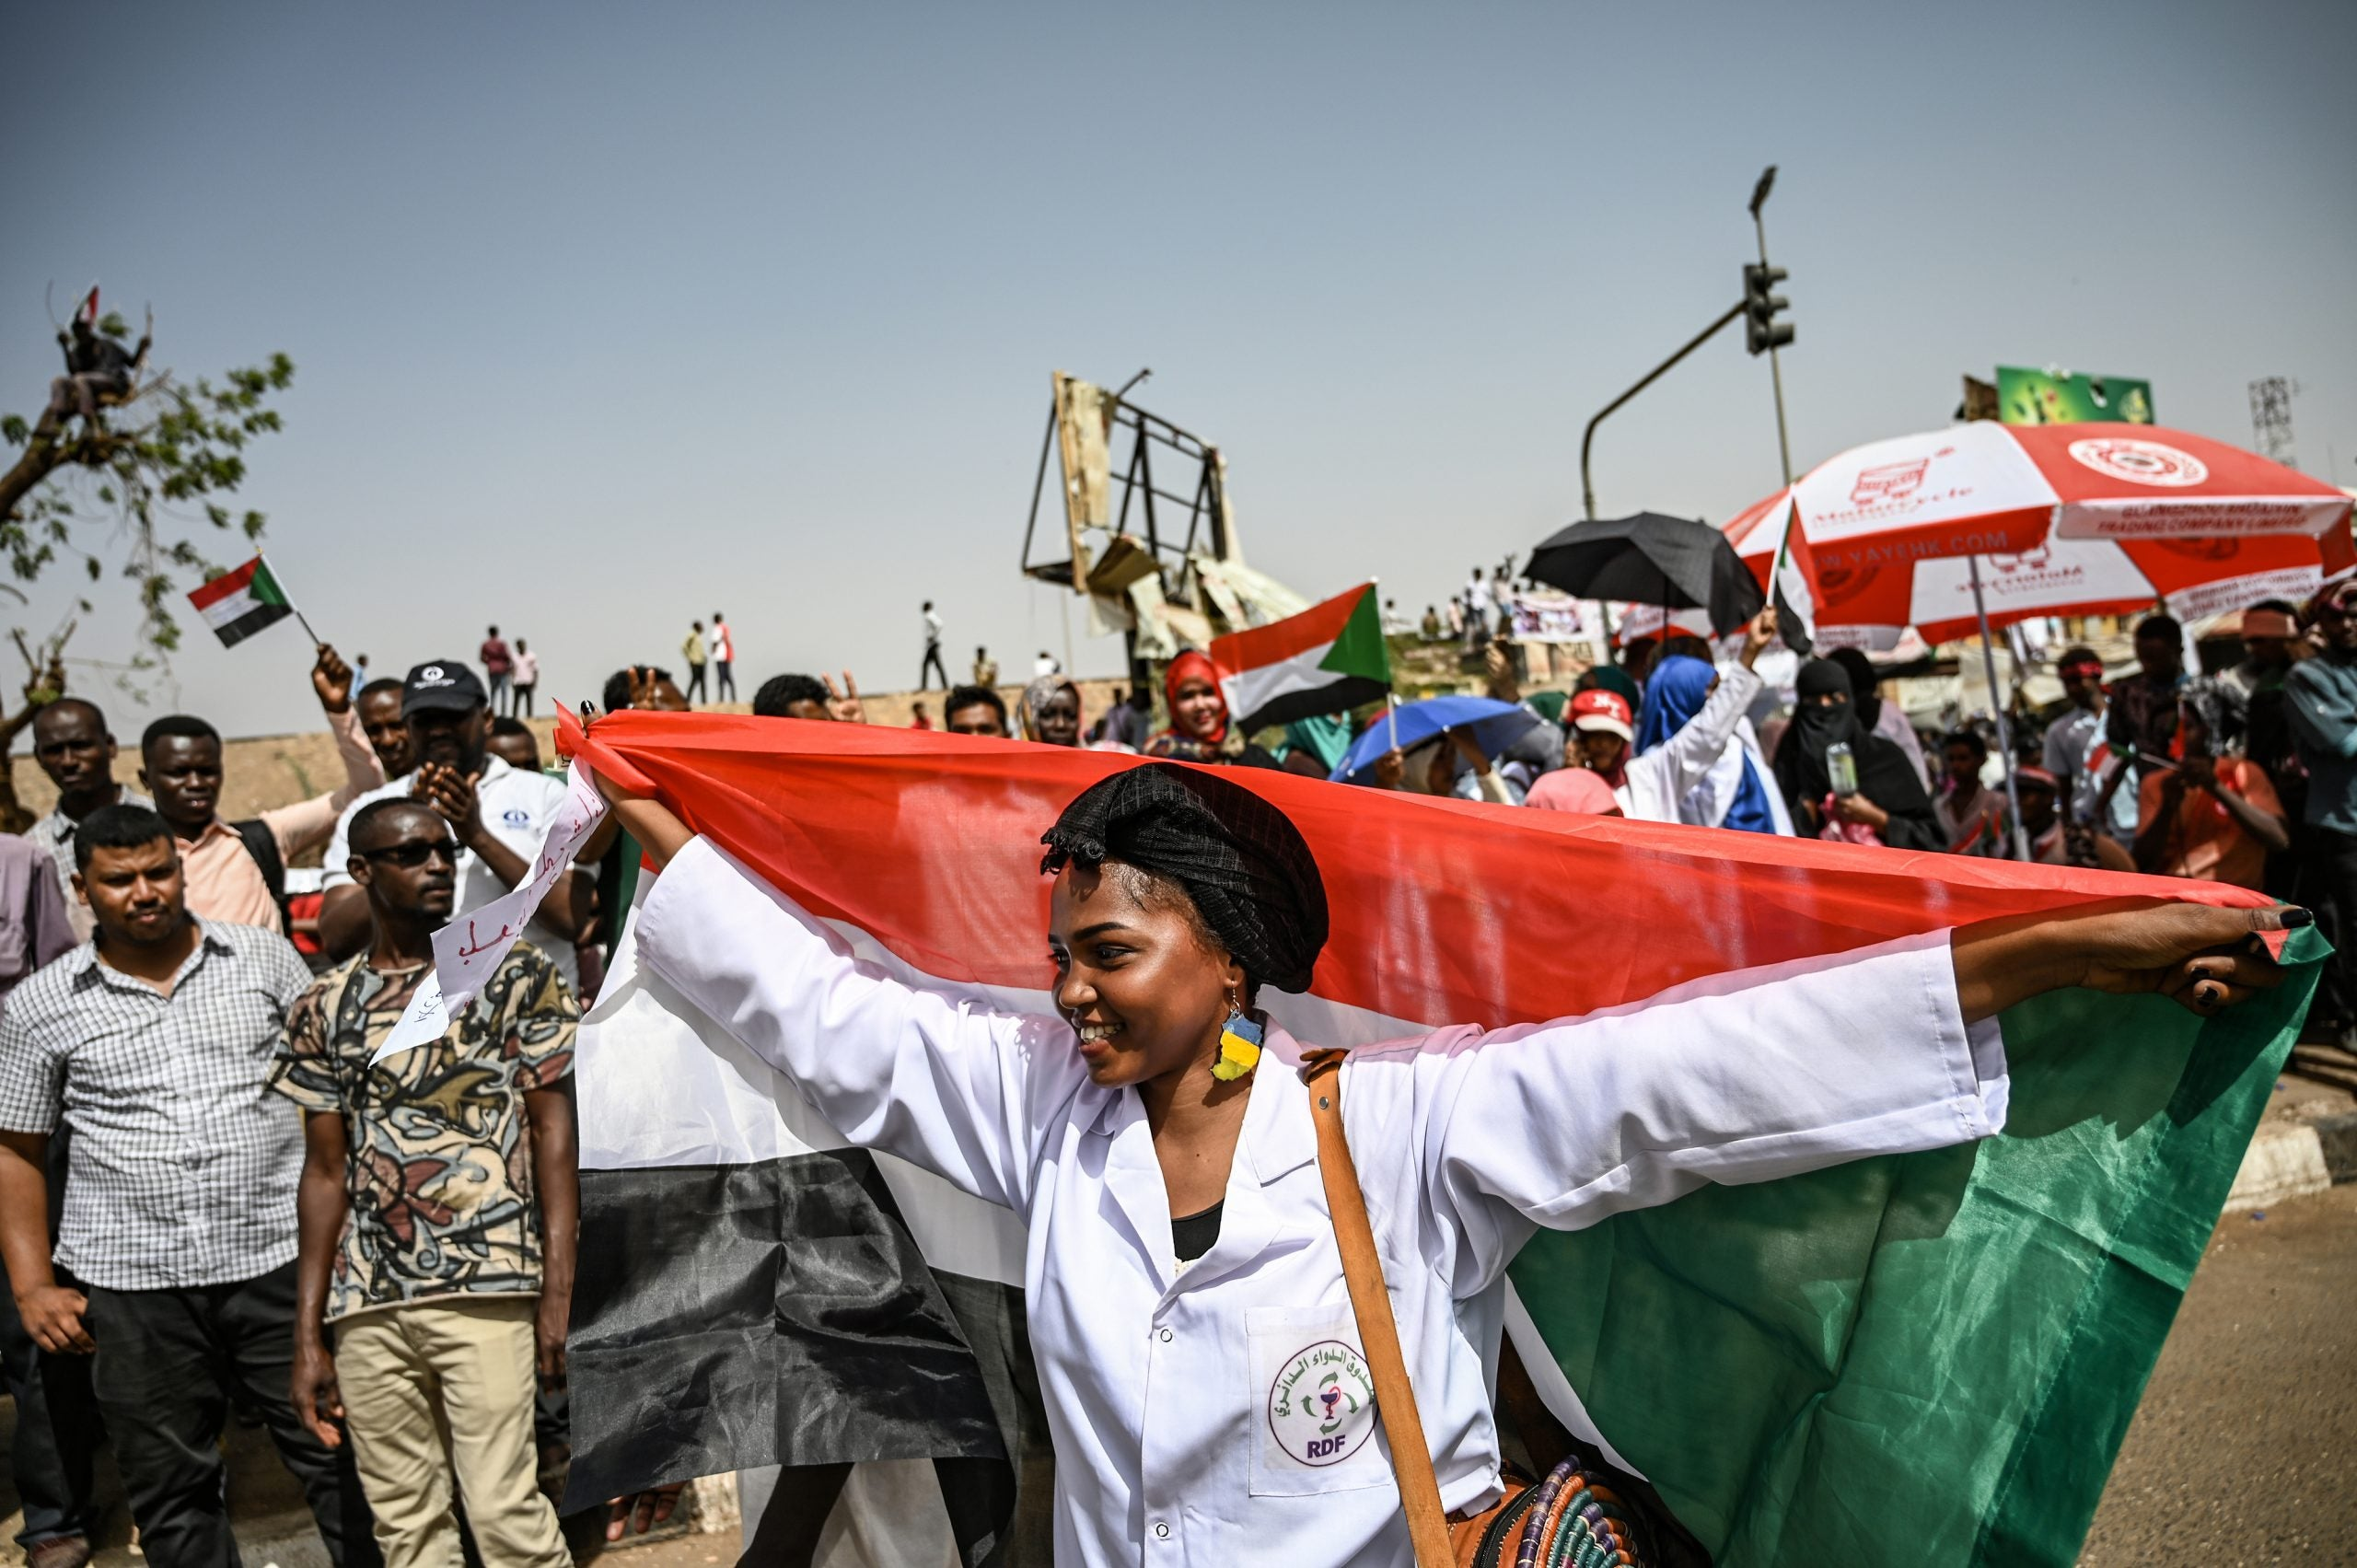 In Sudan, President Bashir is gone – but the shadow of his government remains